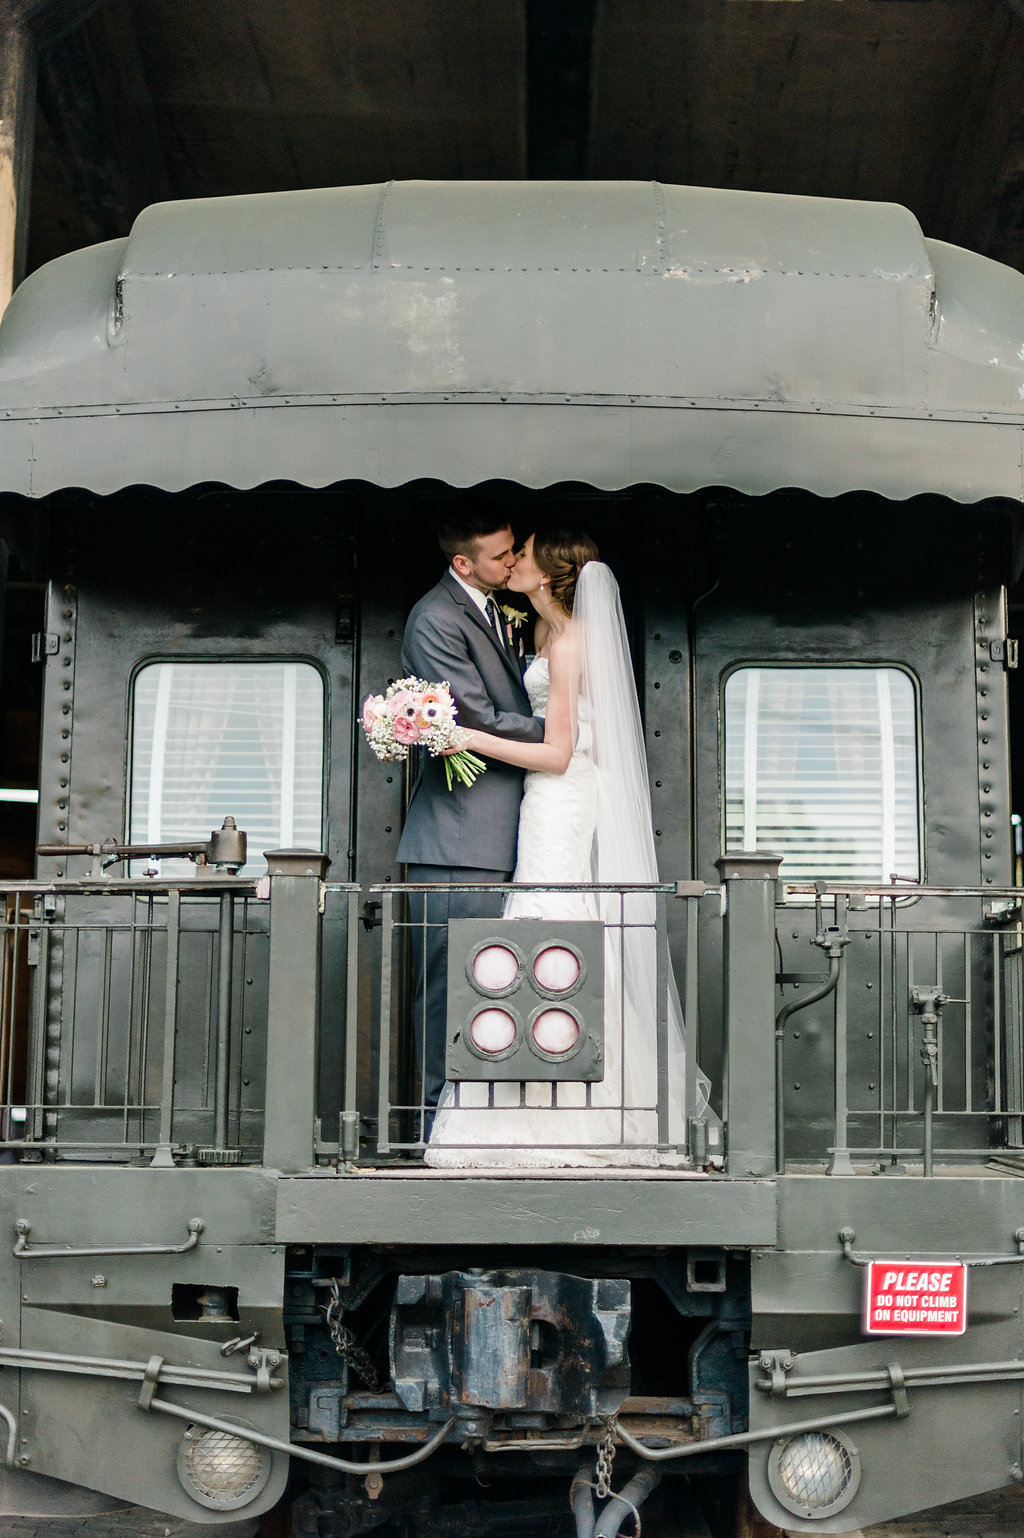 rach-lea-photography-rach-loves-troy-roundhouse-railroad-museum-wedding-ivory-and-beau-savannah-wedding-planner-savannah-weddings-savannah-florist-ivory-and-beau-bridal-boutique-succulent-blush-wedding-26.jpg